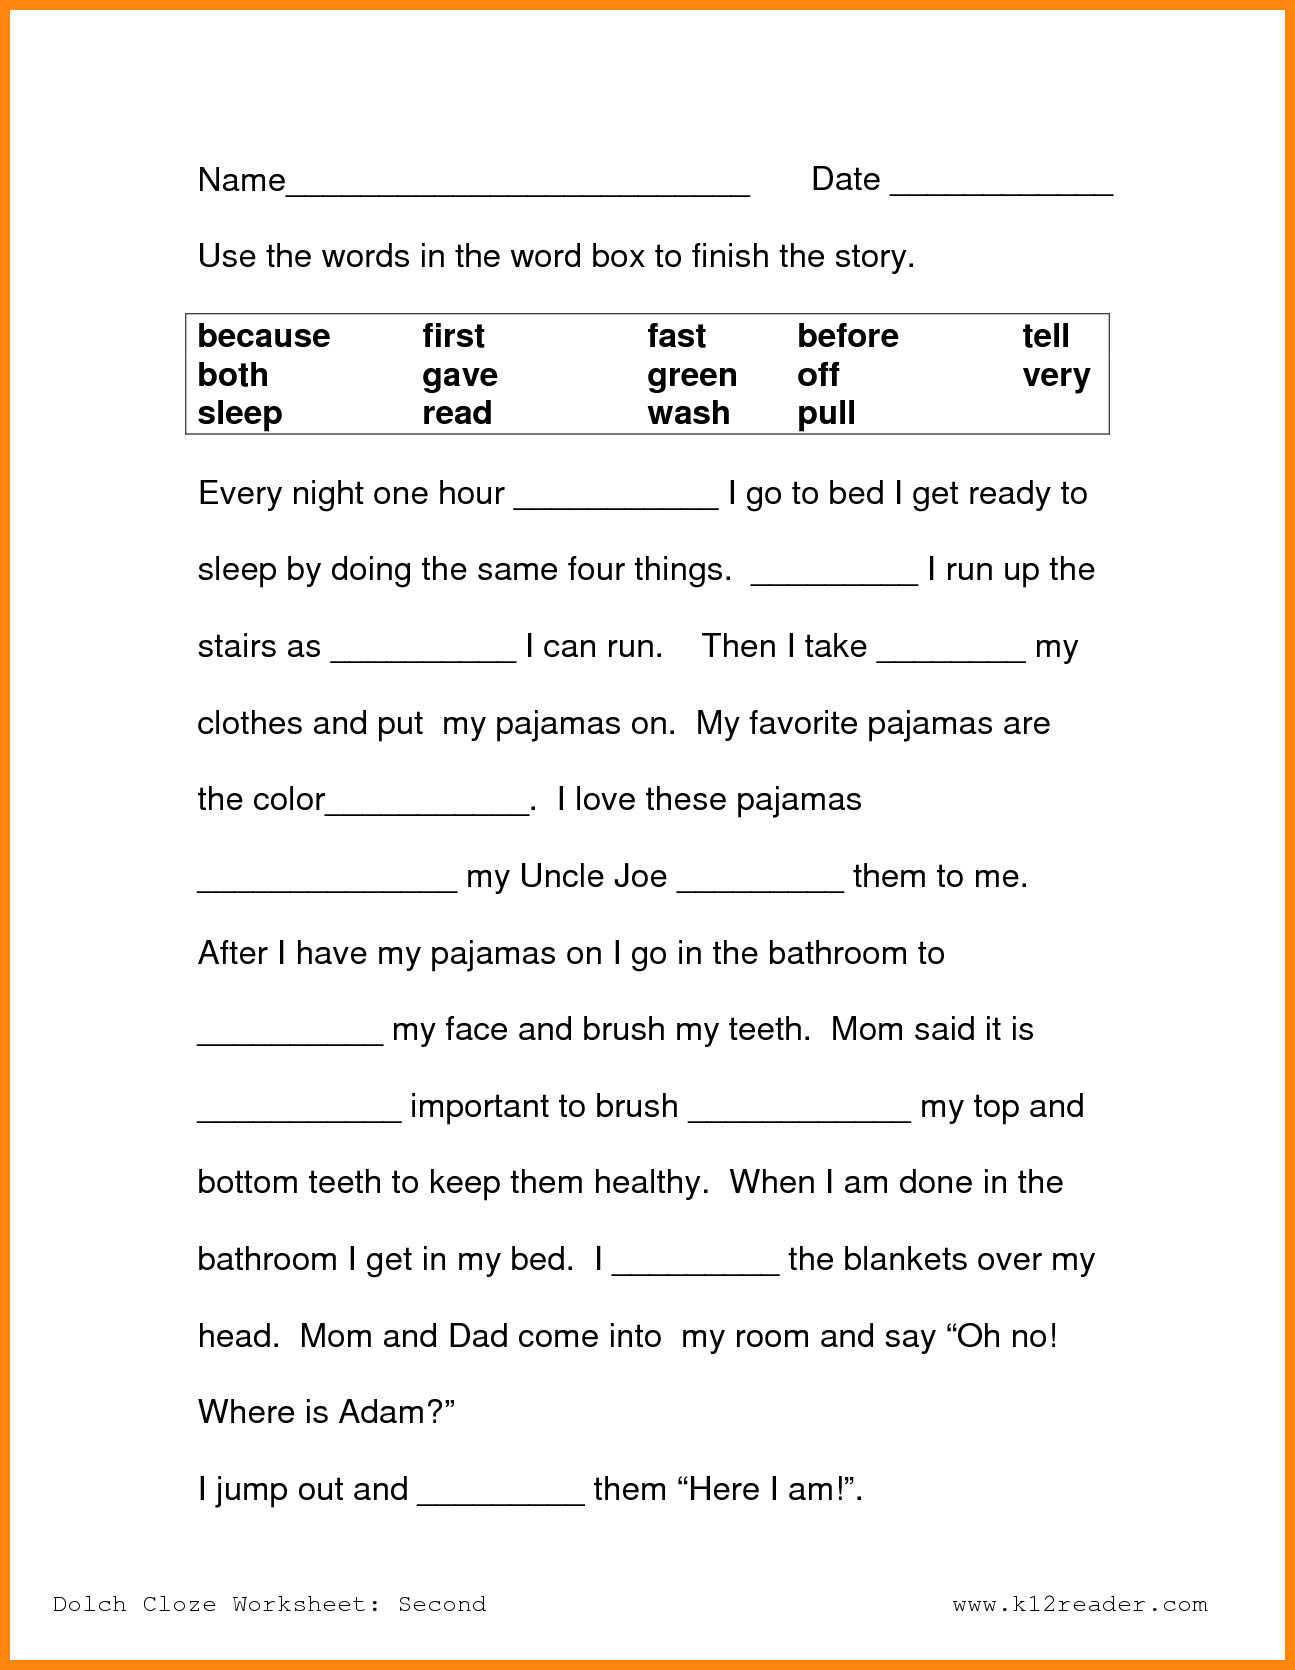 Reading Worksheets 5th Grade Reading Prehension Worksheets for 5th Grade Multiple